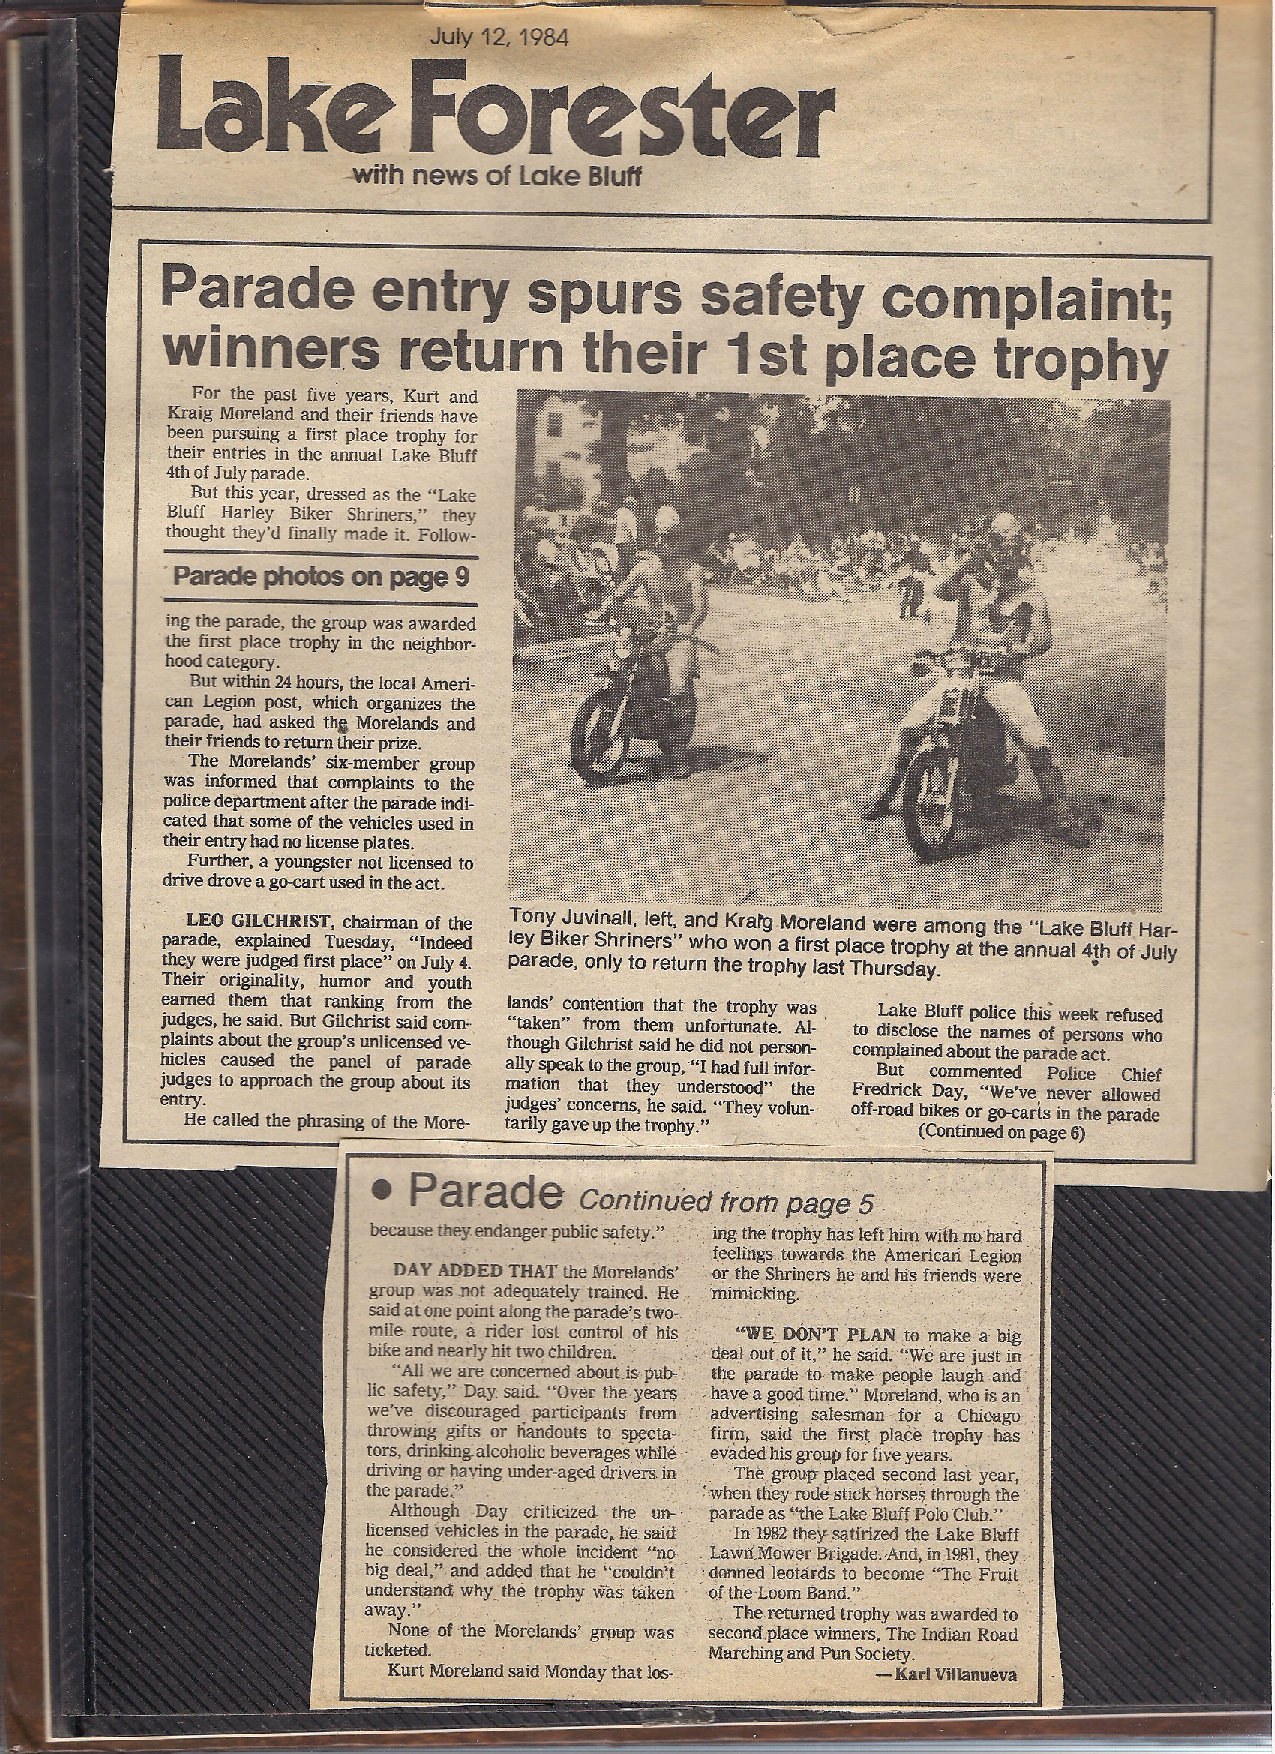 07Harley Biker Shriners Cause Parade Controversy